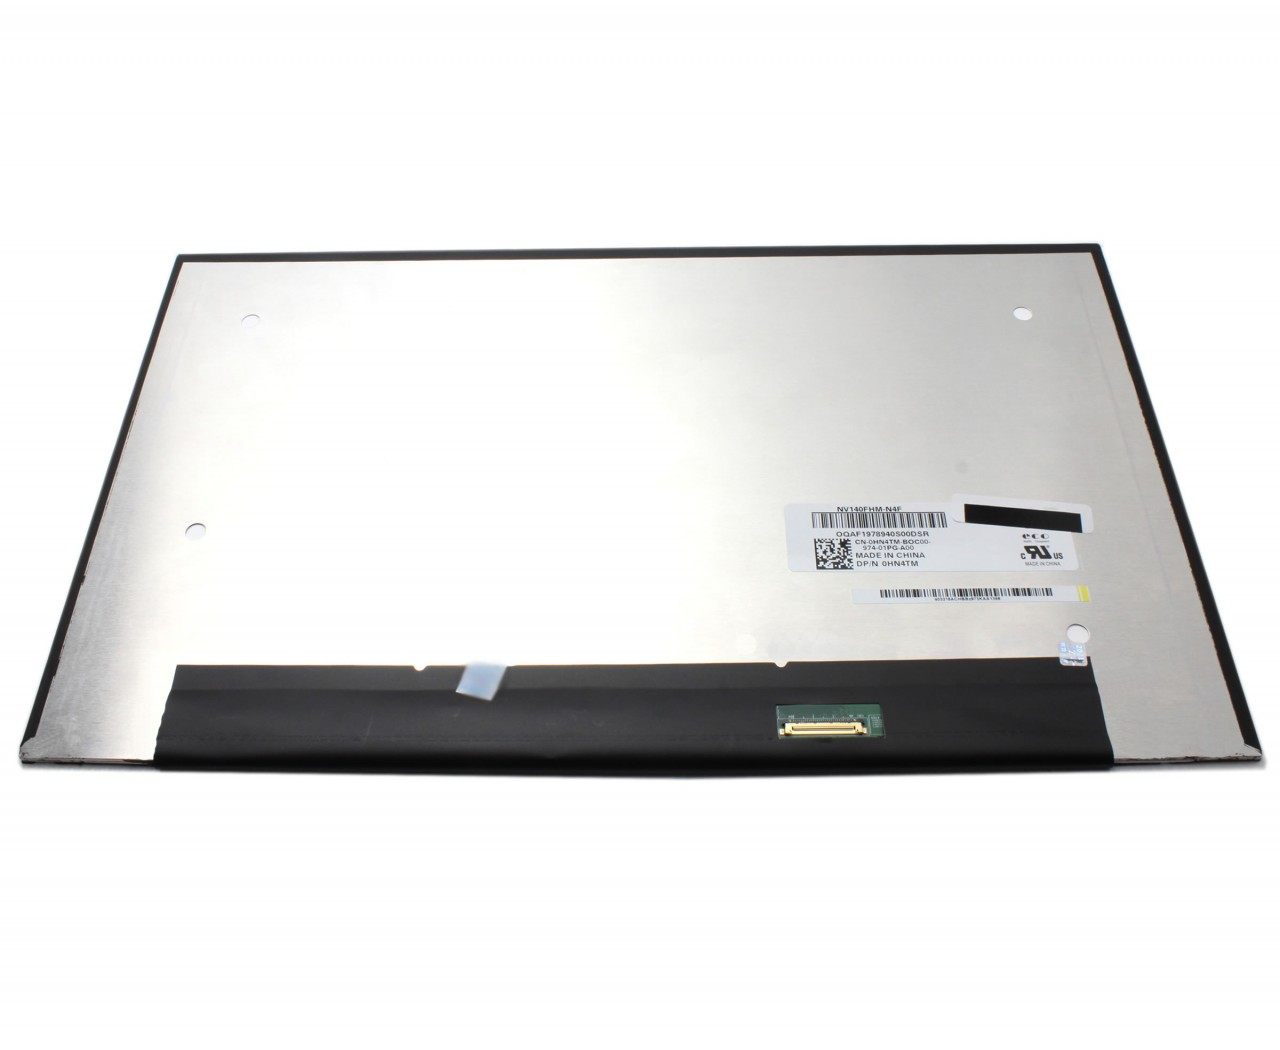 Display laptop BOE NV140FHM-N4F Ecran 14.0 1920x1080 30 pinni eDP imagine powerlaptop.ro 2021